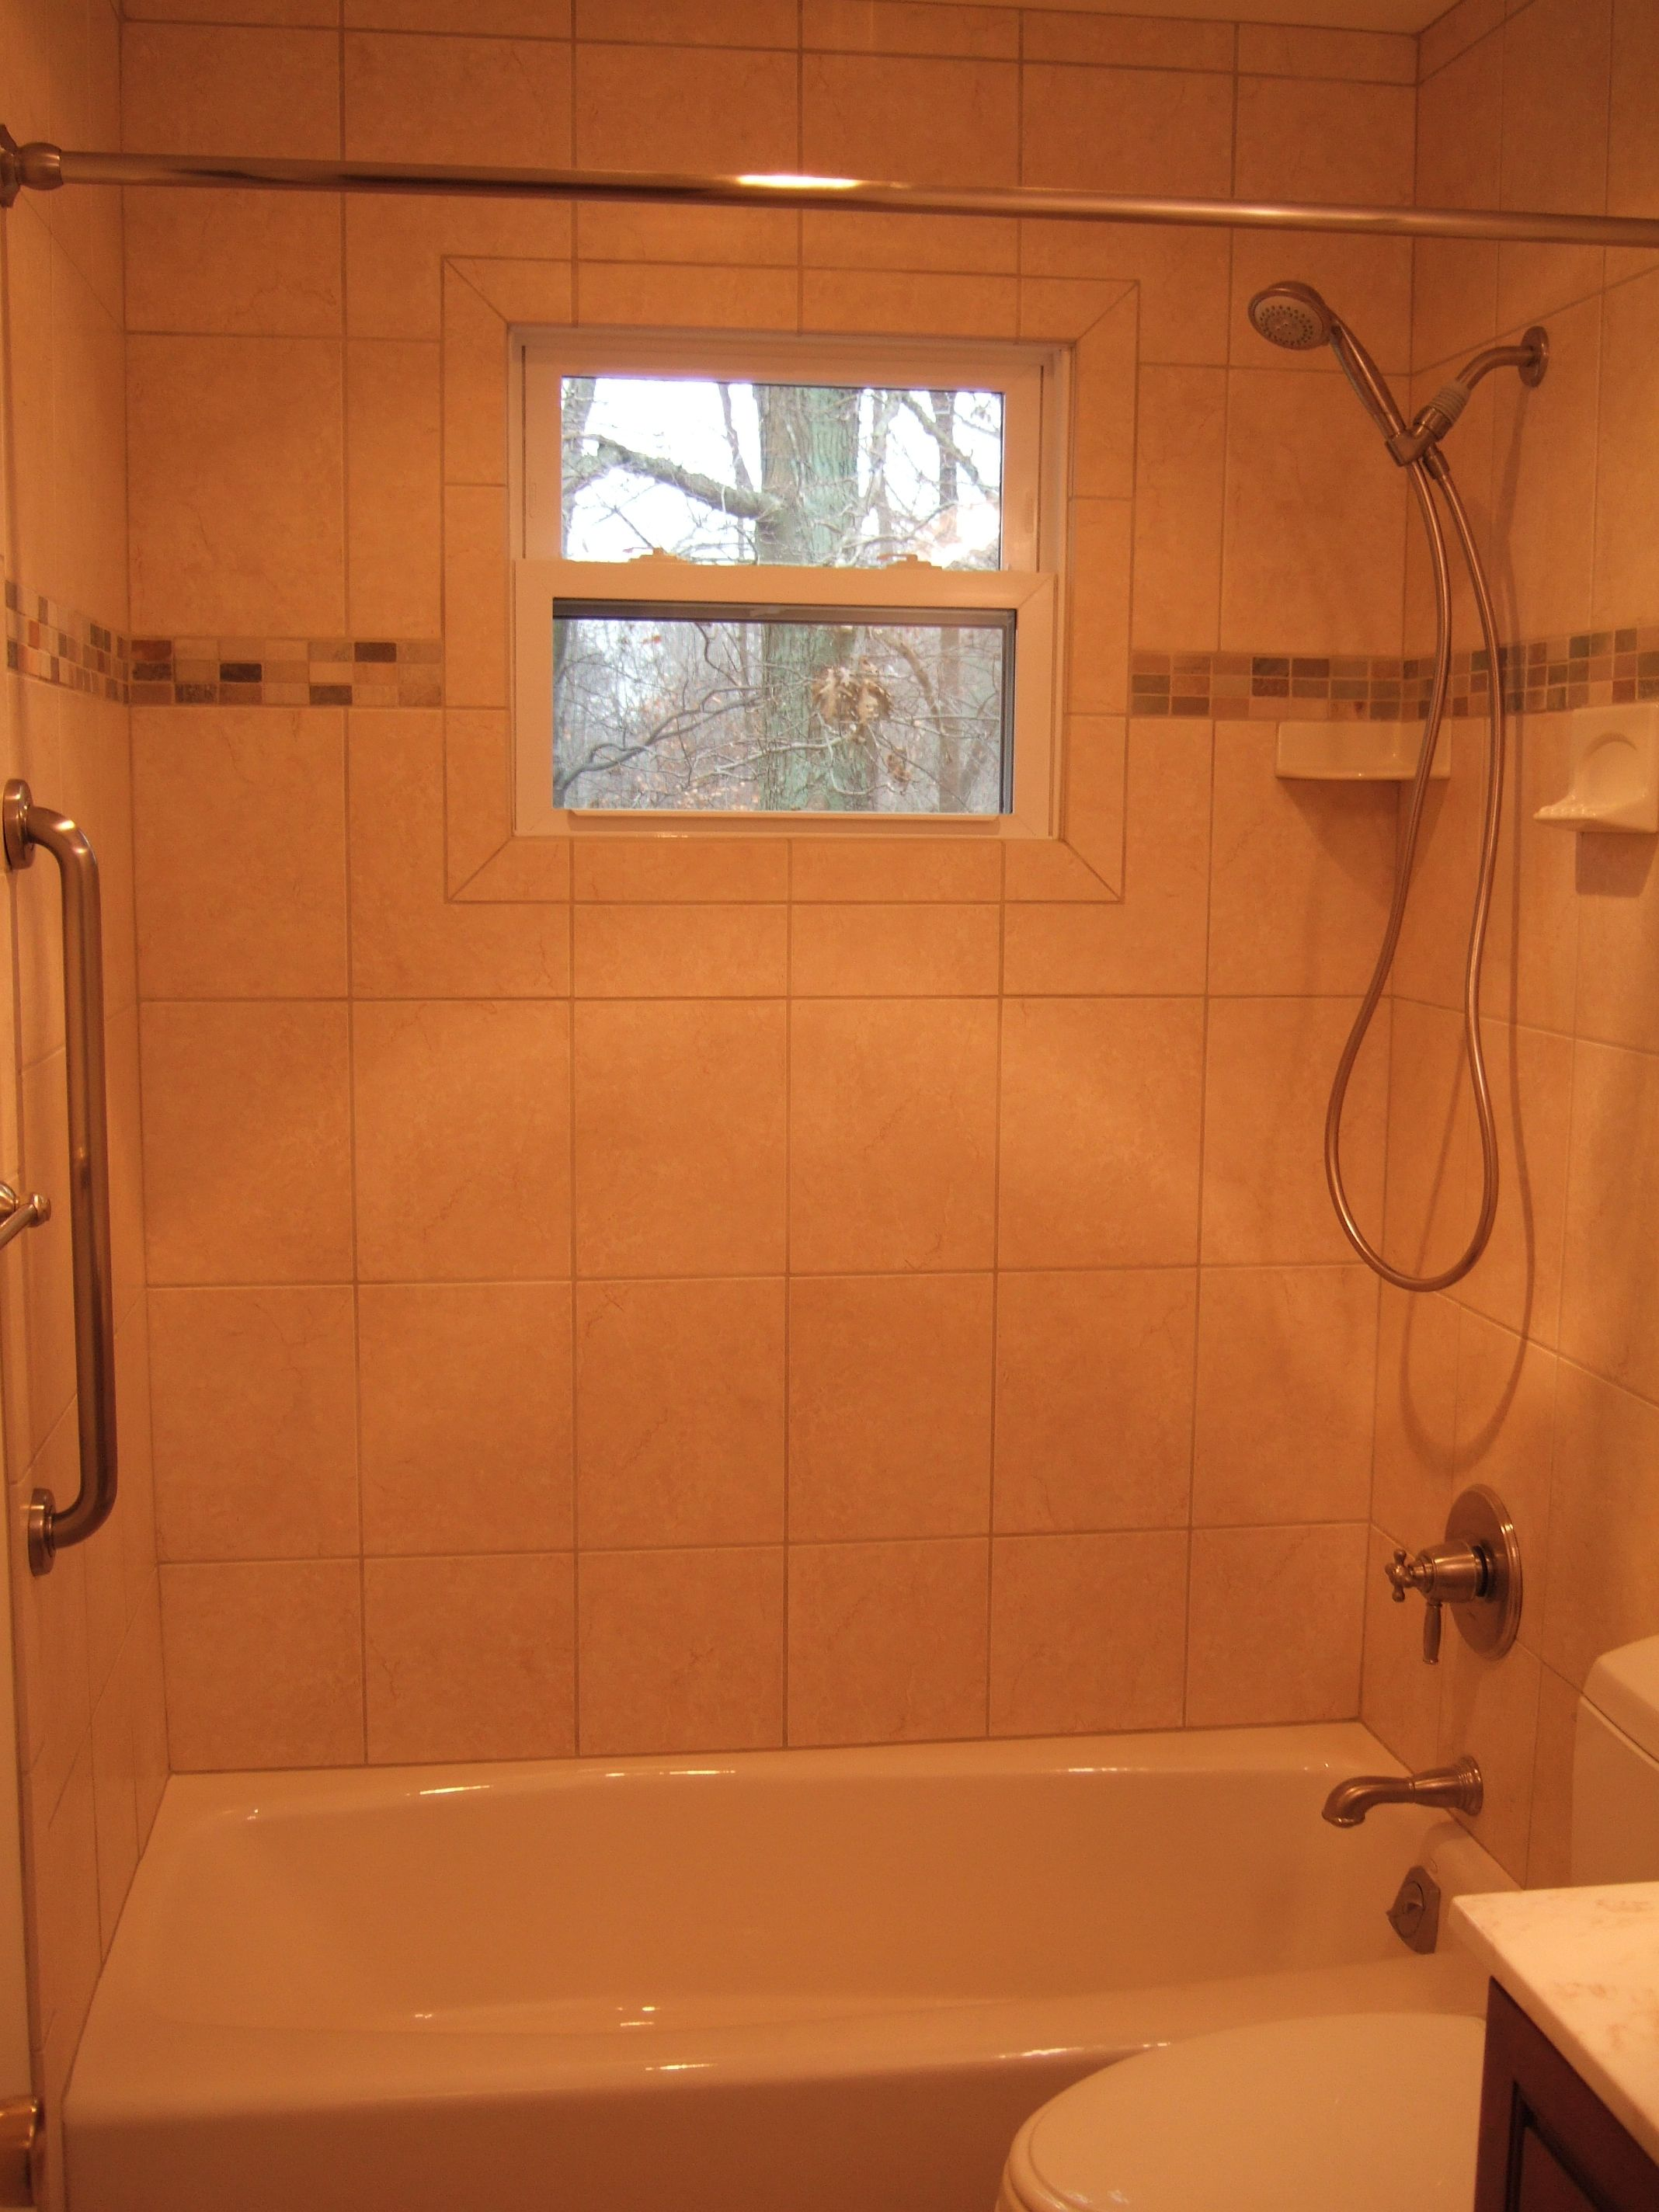 fiberglass tubs and walls idea | Main bathroom tub shower with 10x13 ...